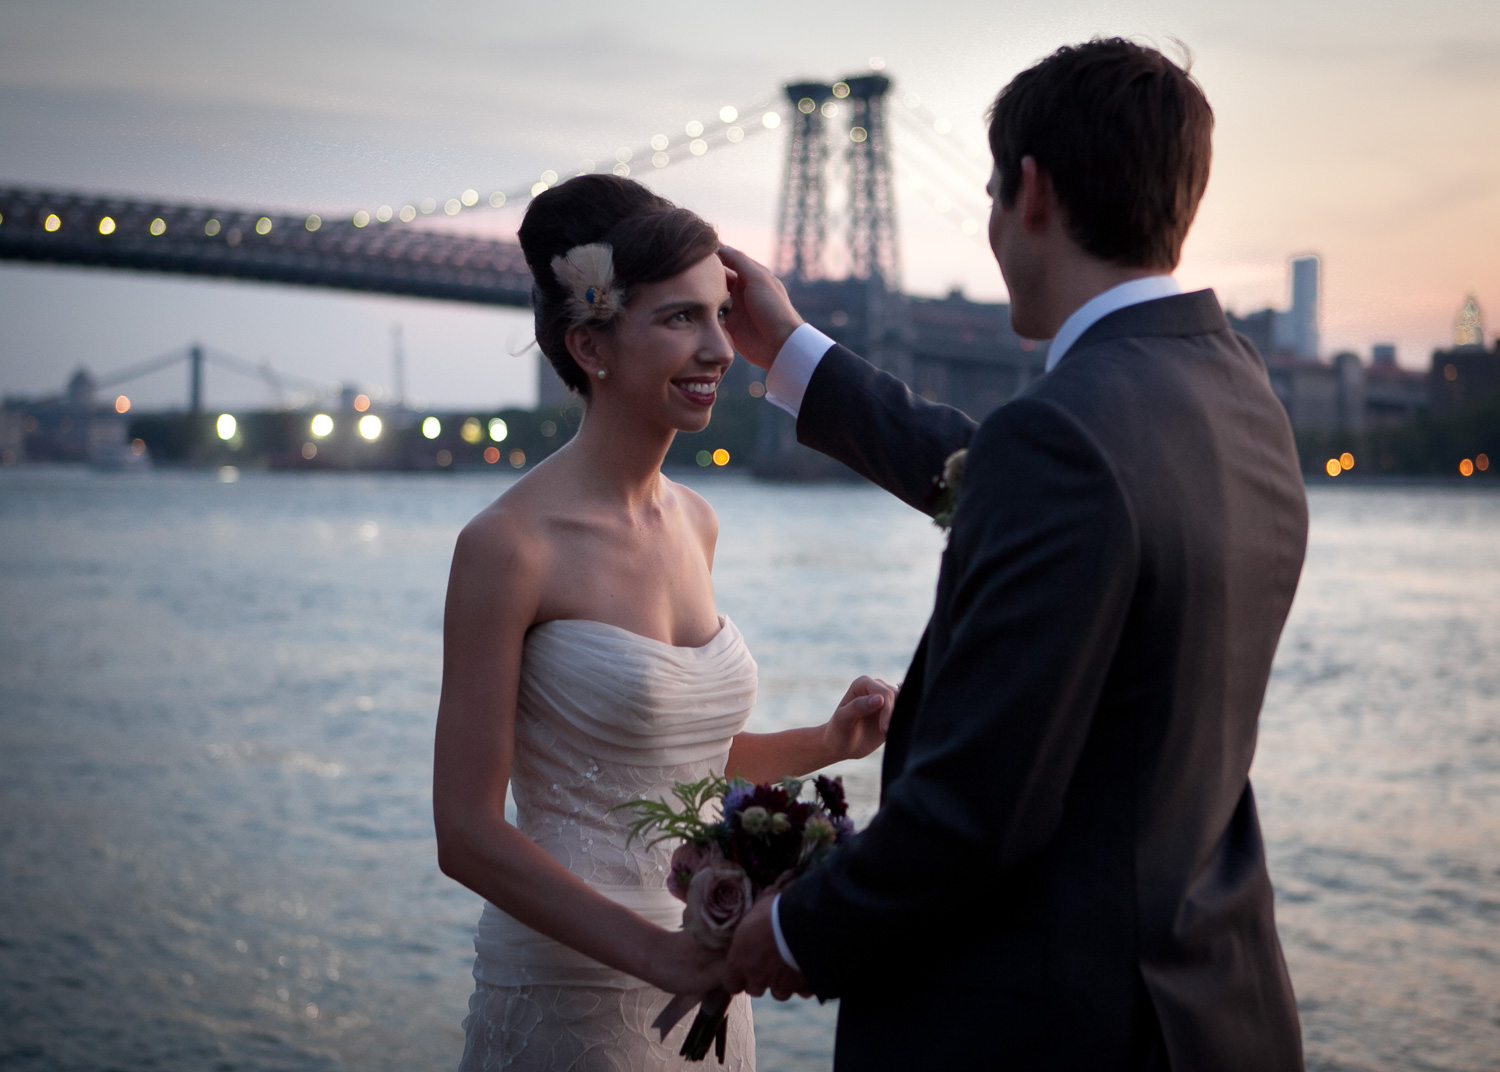 The bride and groom upon first seeing each other before the ceremony, during sunset on the Hudson NYC